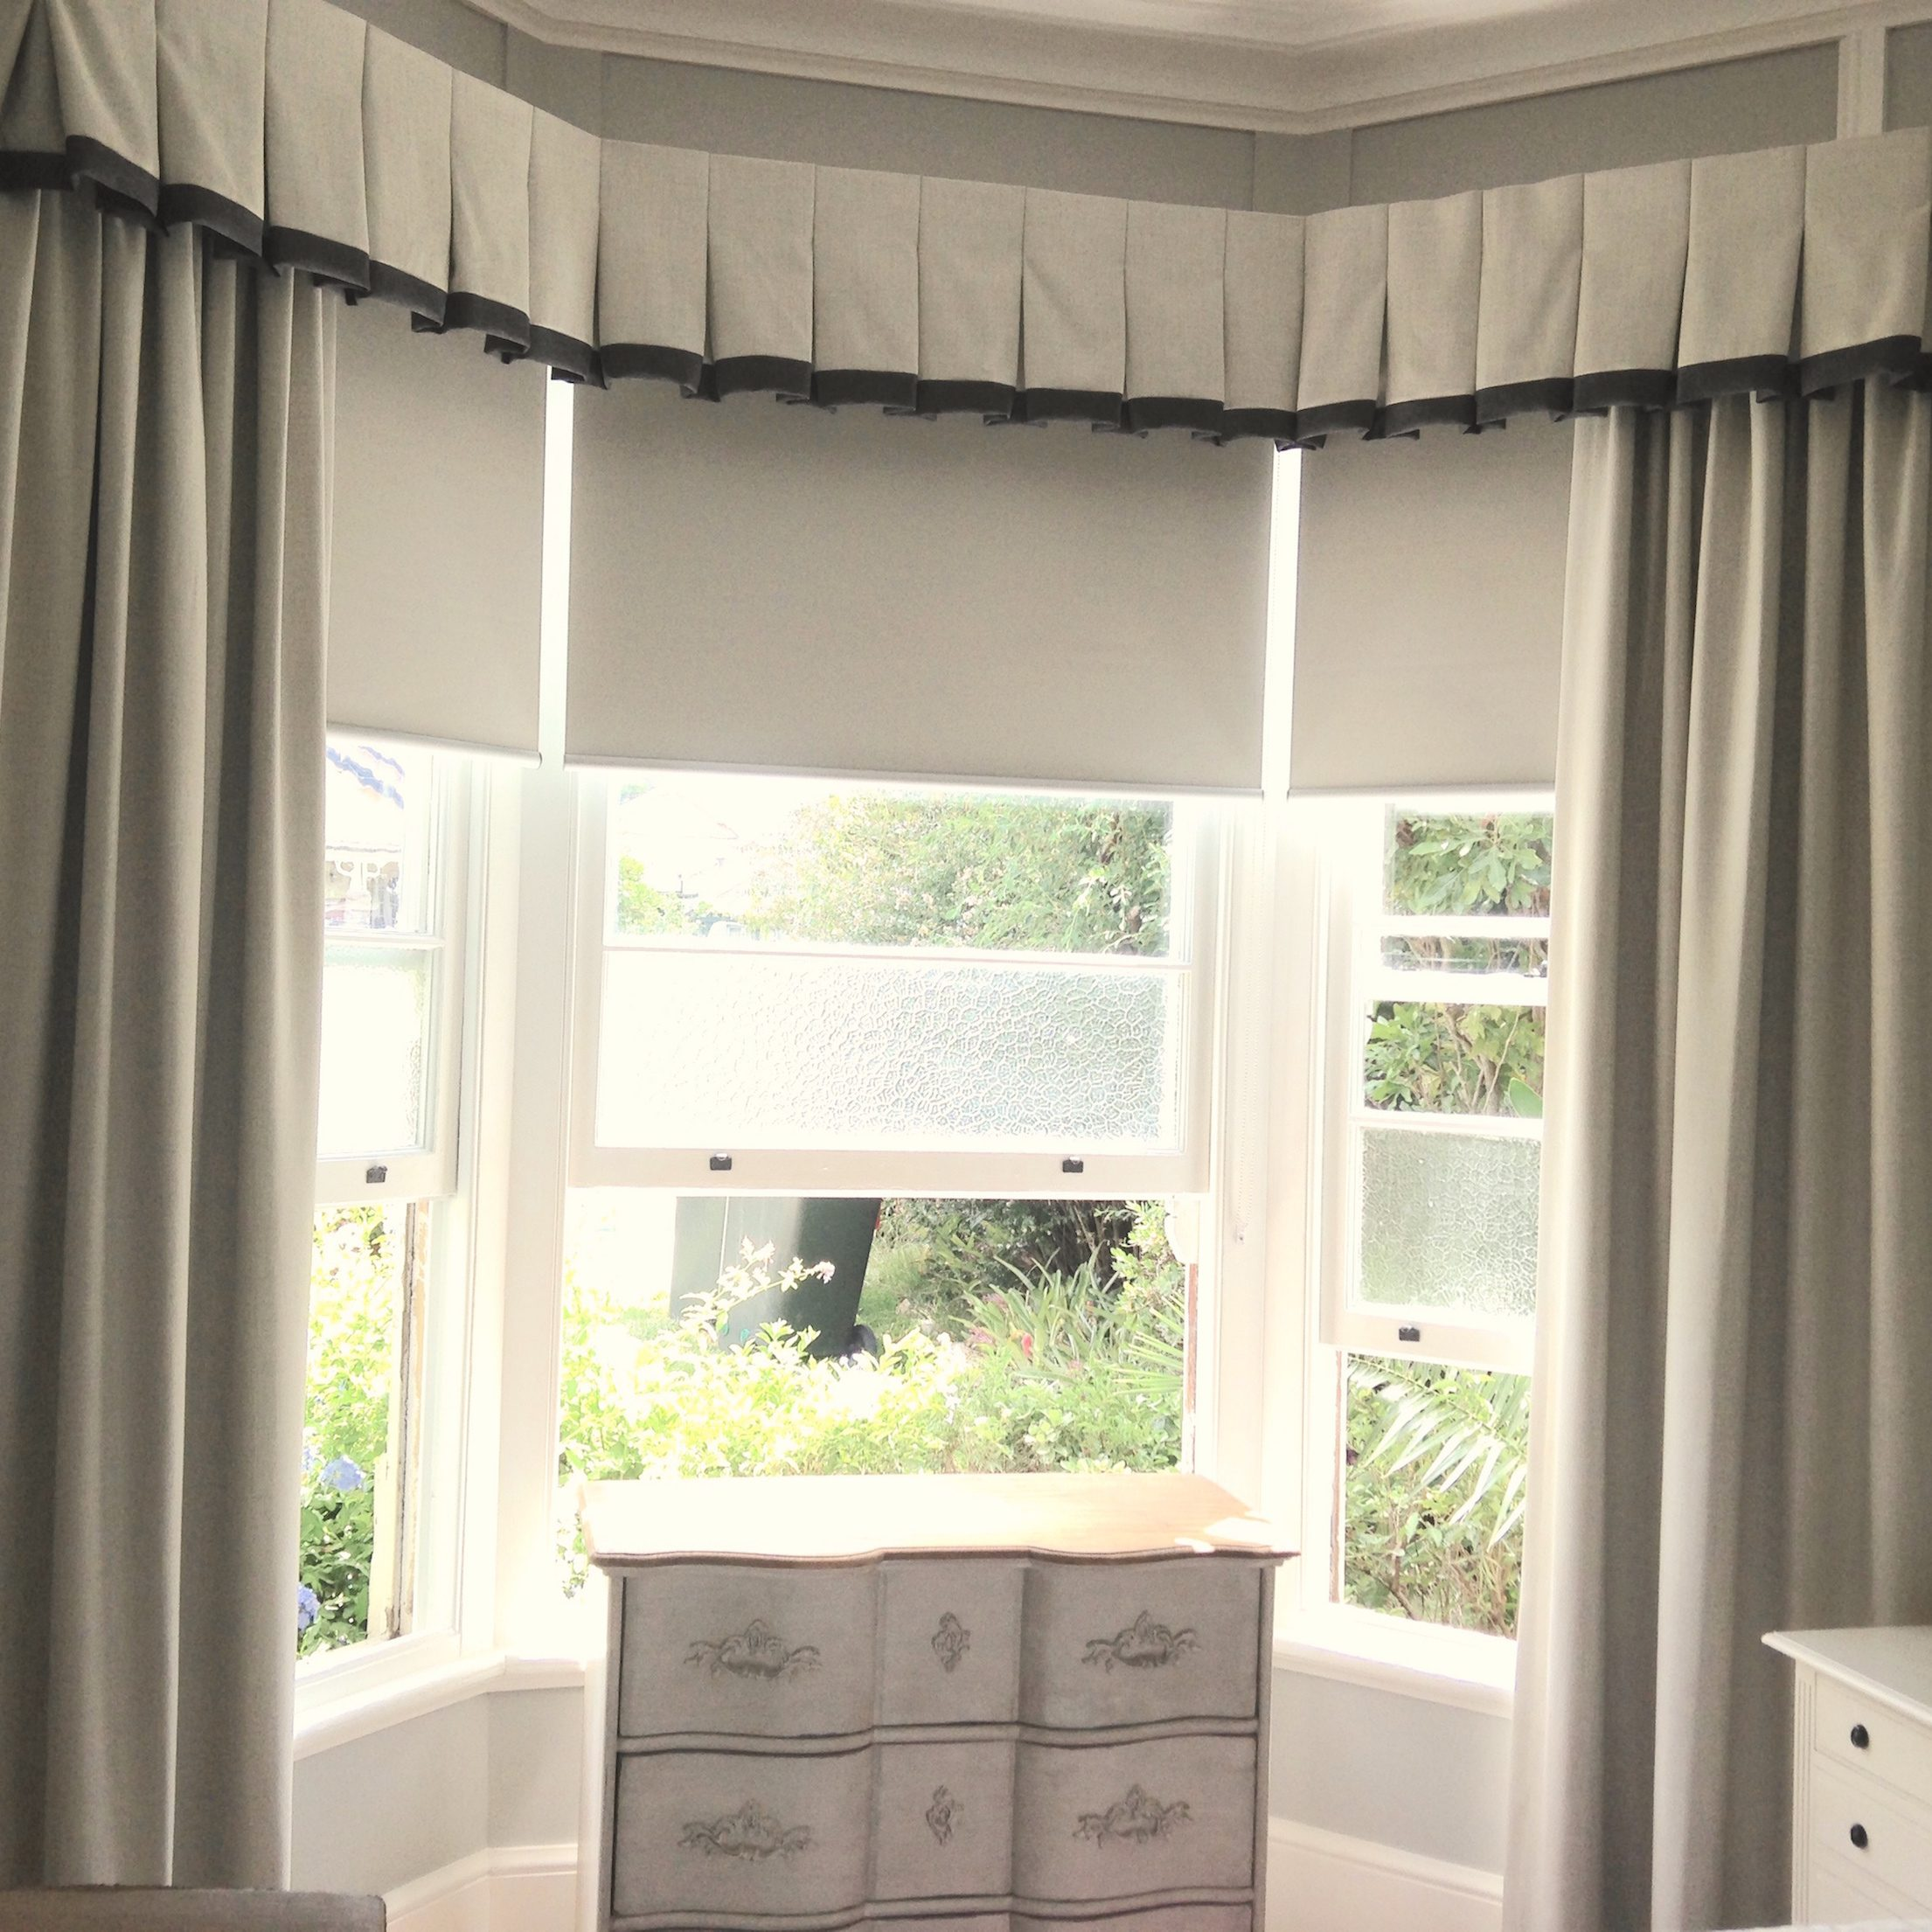 design window living collection awesome for treatments solutions armchair ideas vertical valance curtains patterns and with blinds room category of